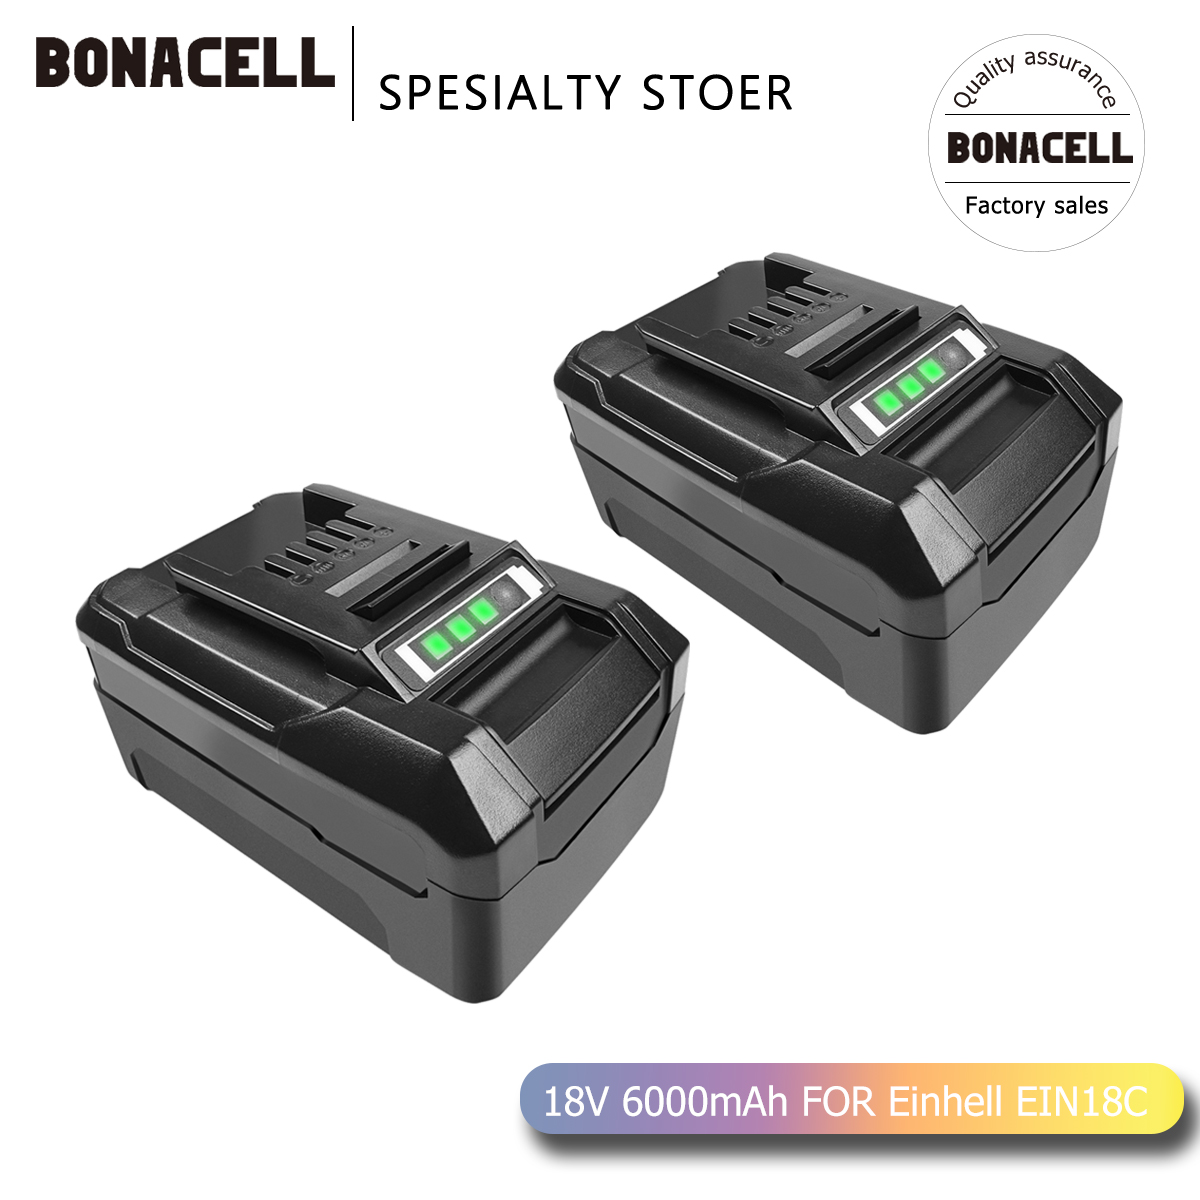 Bonacell Replacement <font><b>Battery</b></font> <font><b>6000mAh</b></font> 18V <font><b>18650</b></font> For Einhell Composition EIN18C PXBP-300 PXBP-600 PX-BAT5 Power Tools <font><b>Battery</b></font> L70 image